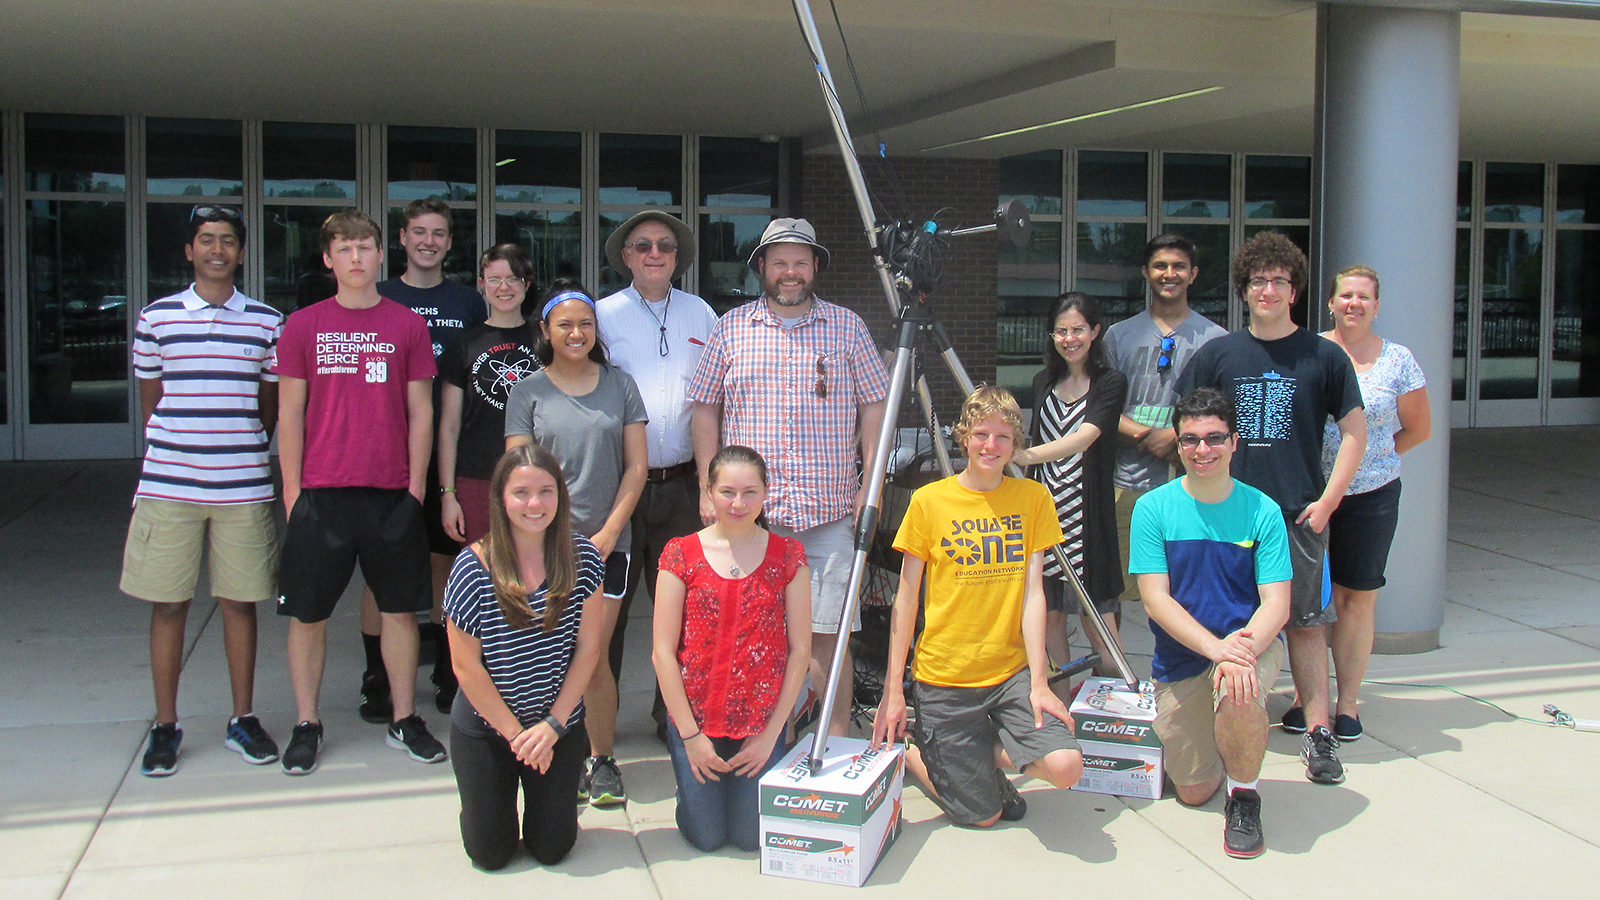 Group photo of students and teachers involved in QuarkNet